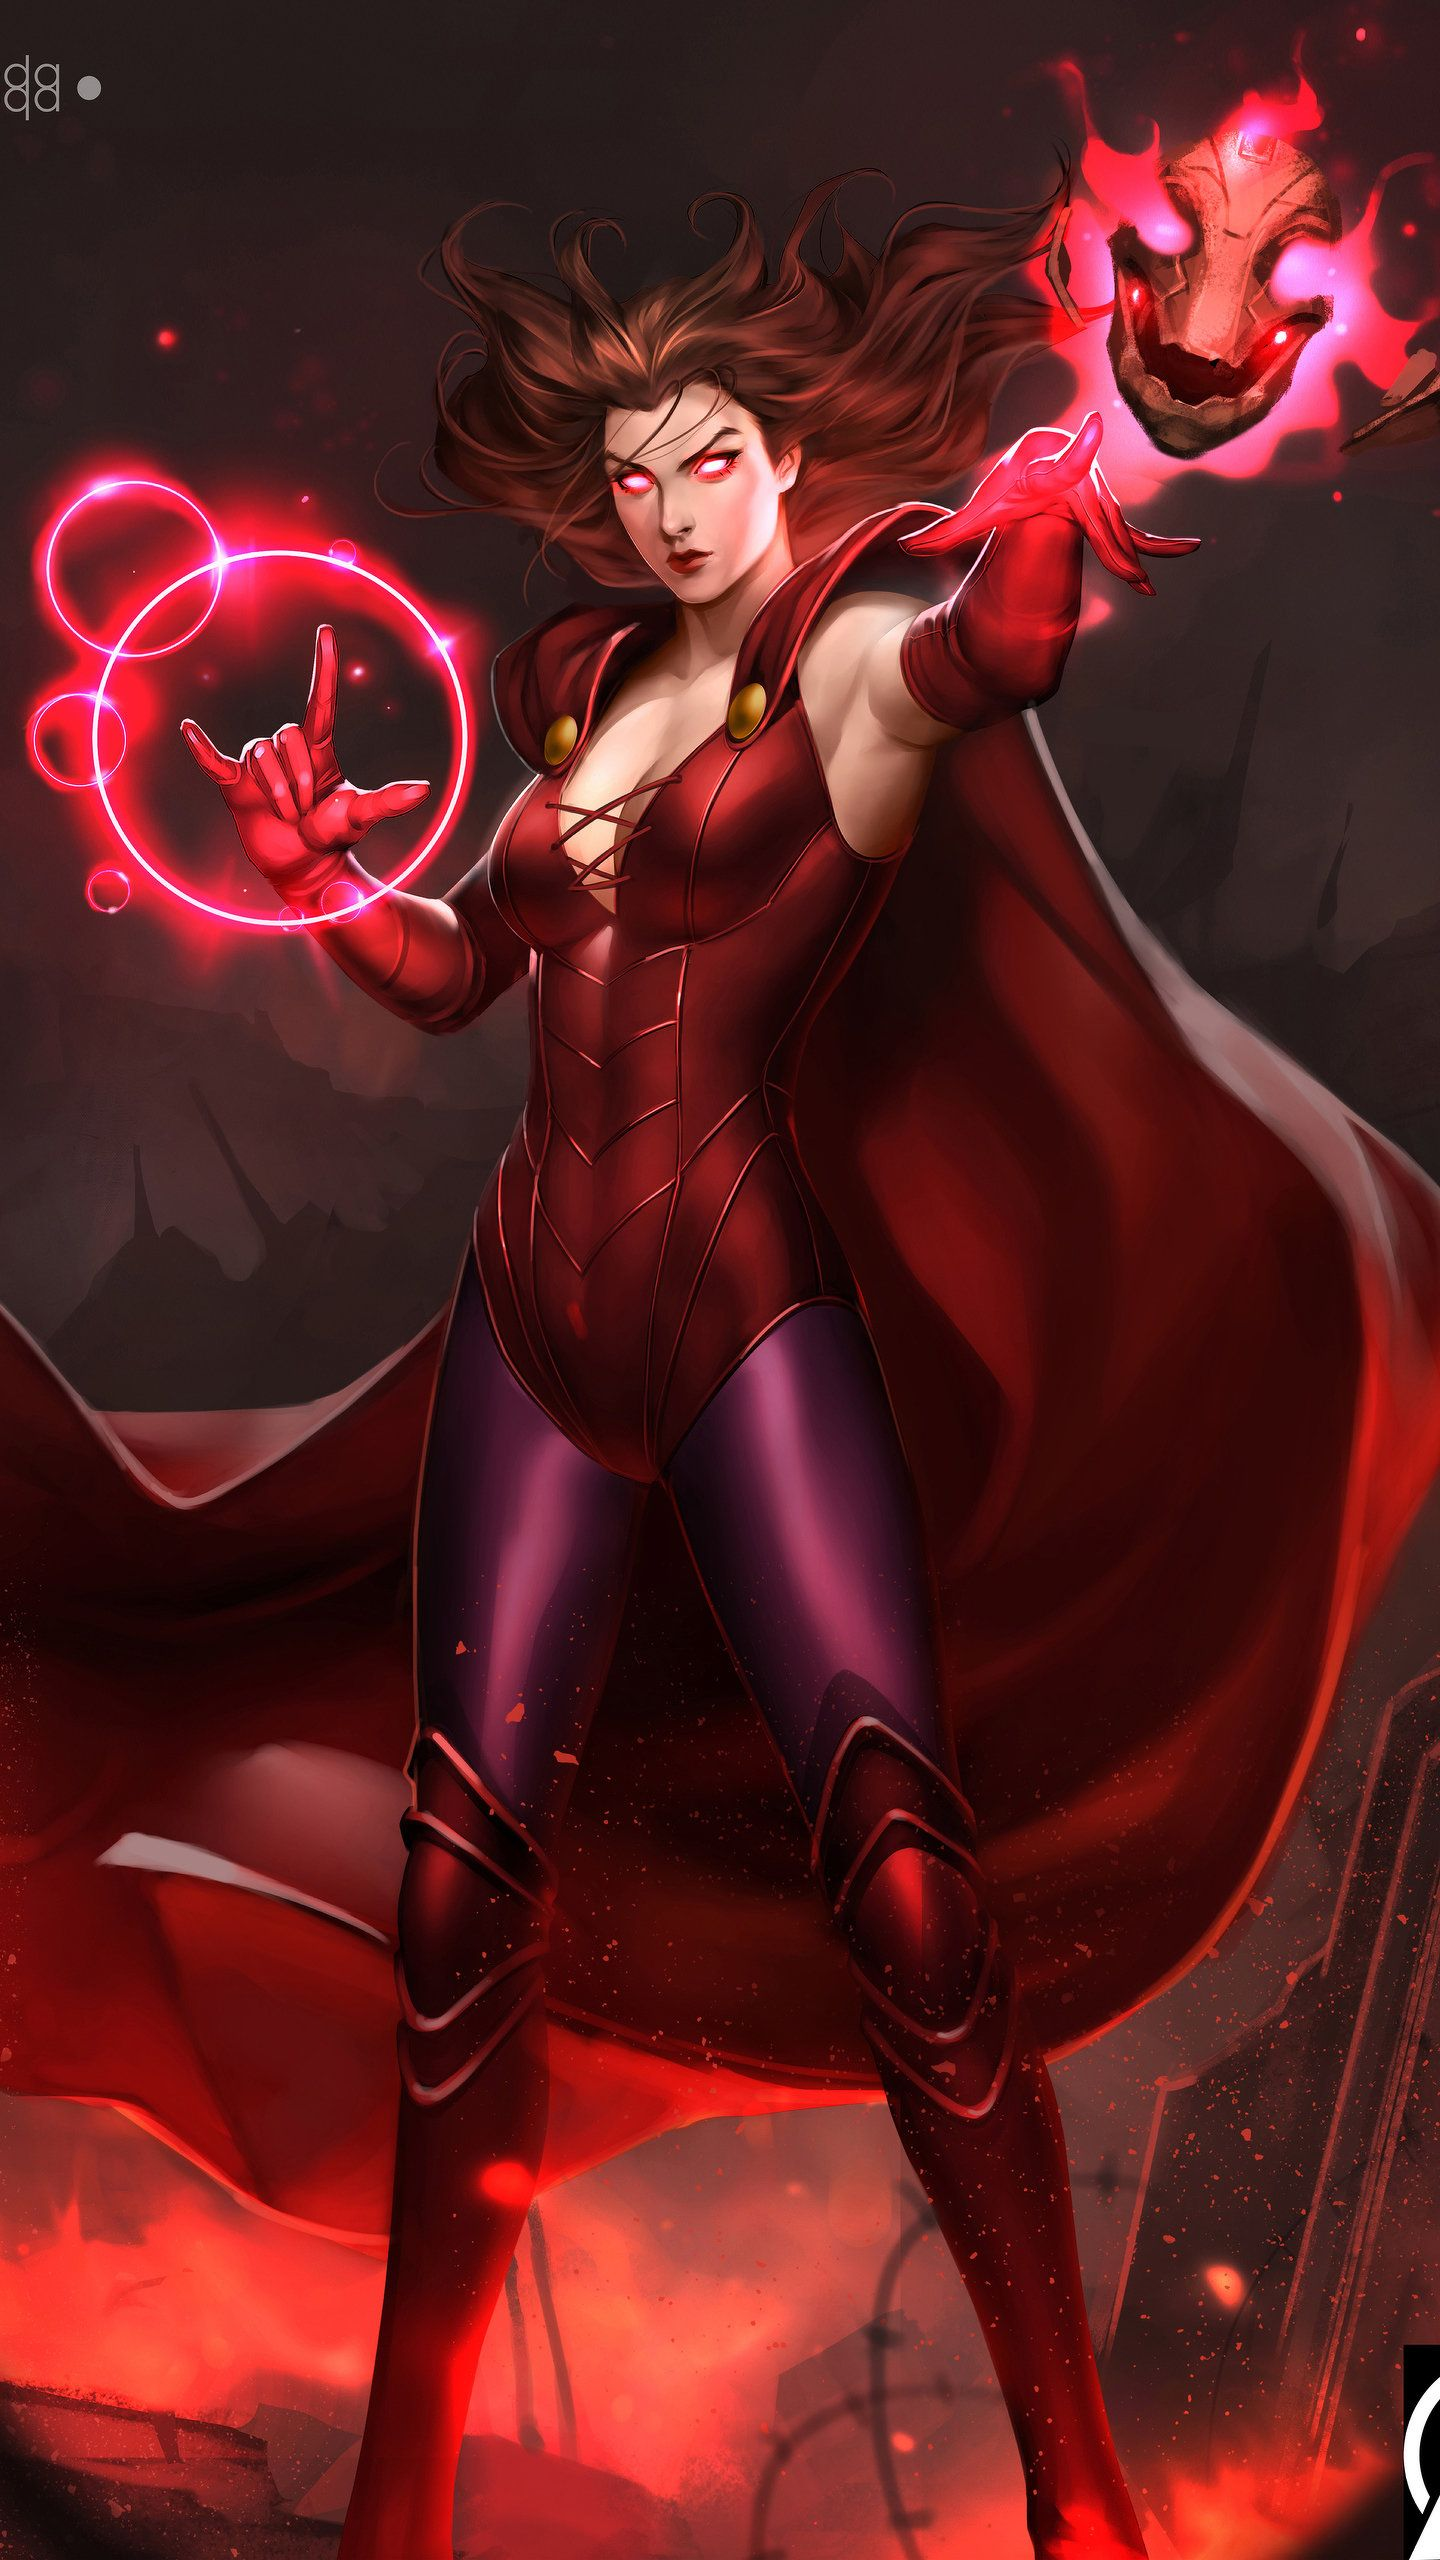 Scarlet Witch 4K Art HD Wallpaper in 2020 | Scarlet witch comic ...